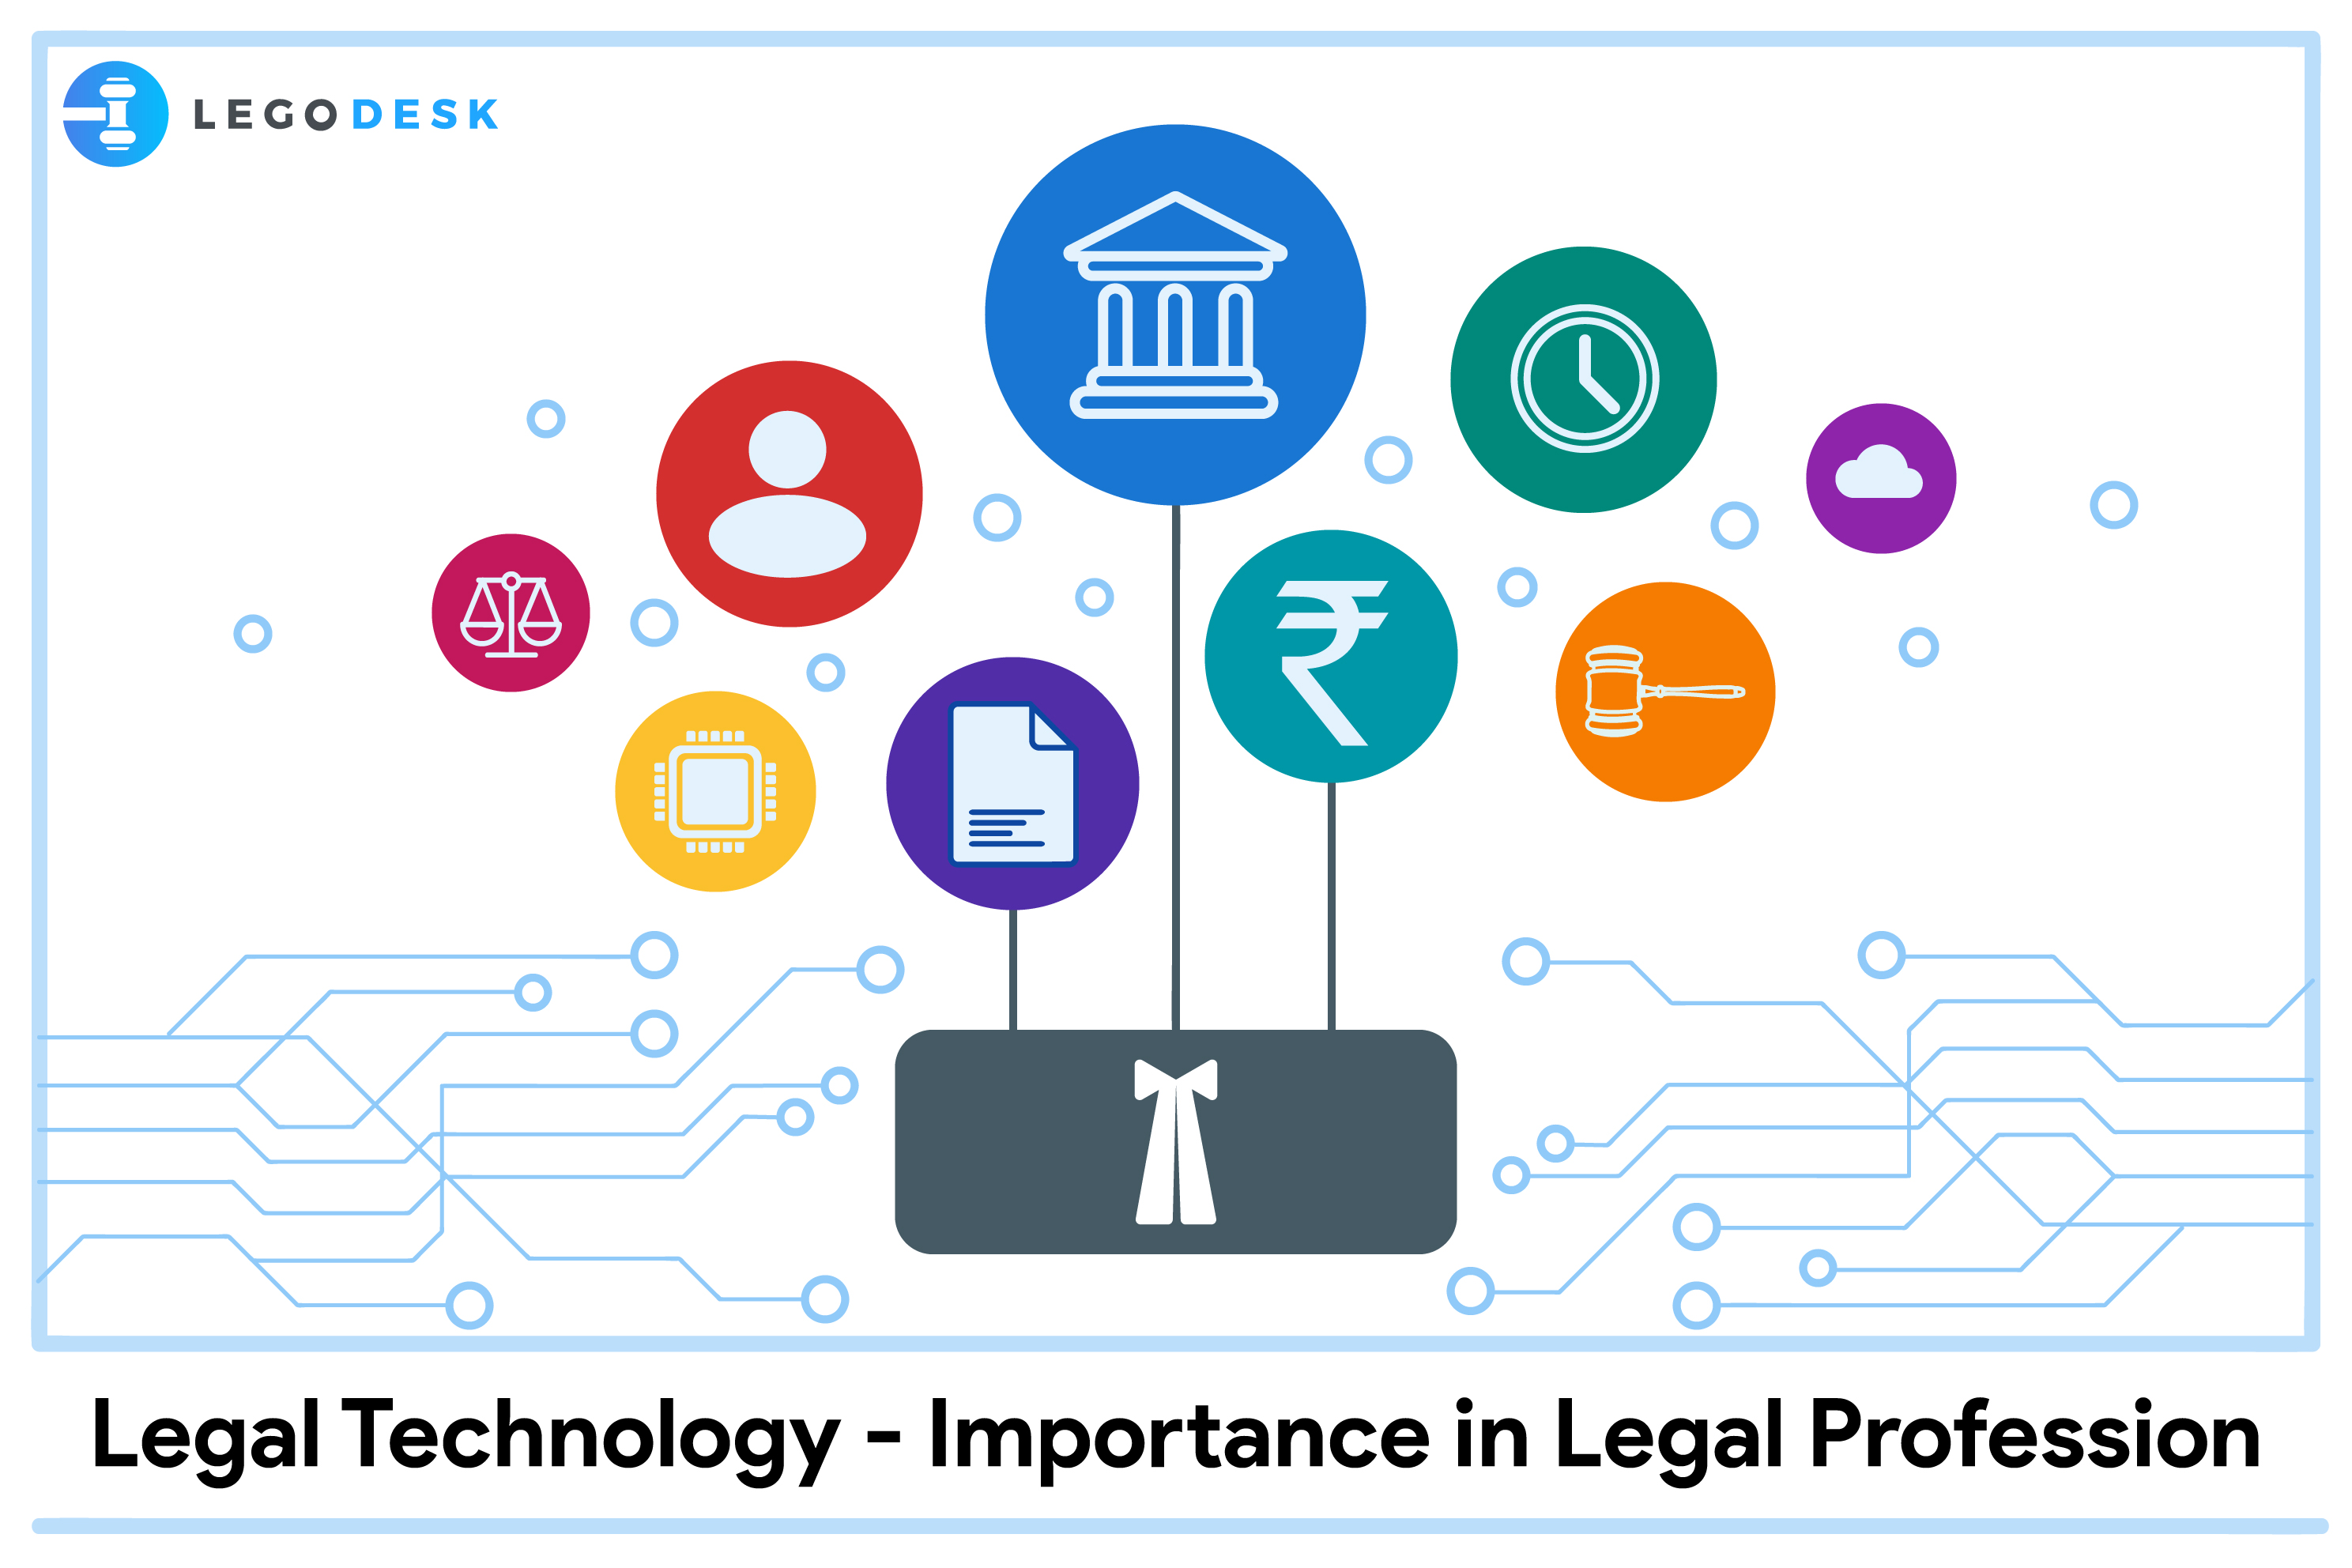 What is the Importance Of Legal Technology in Legal Profession?